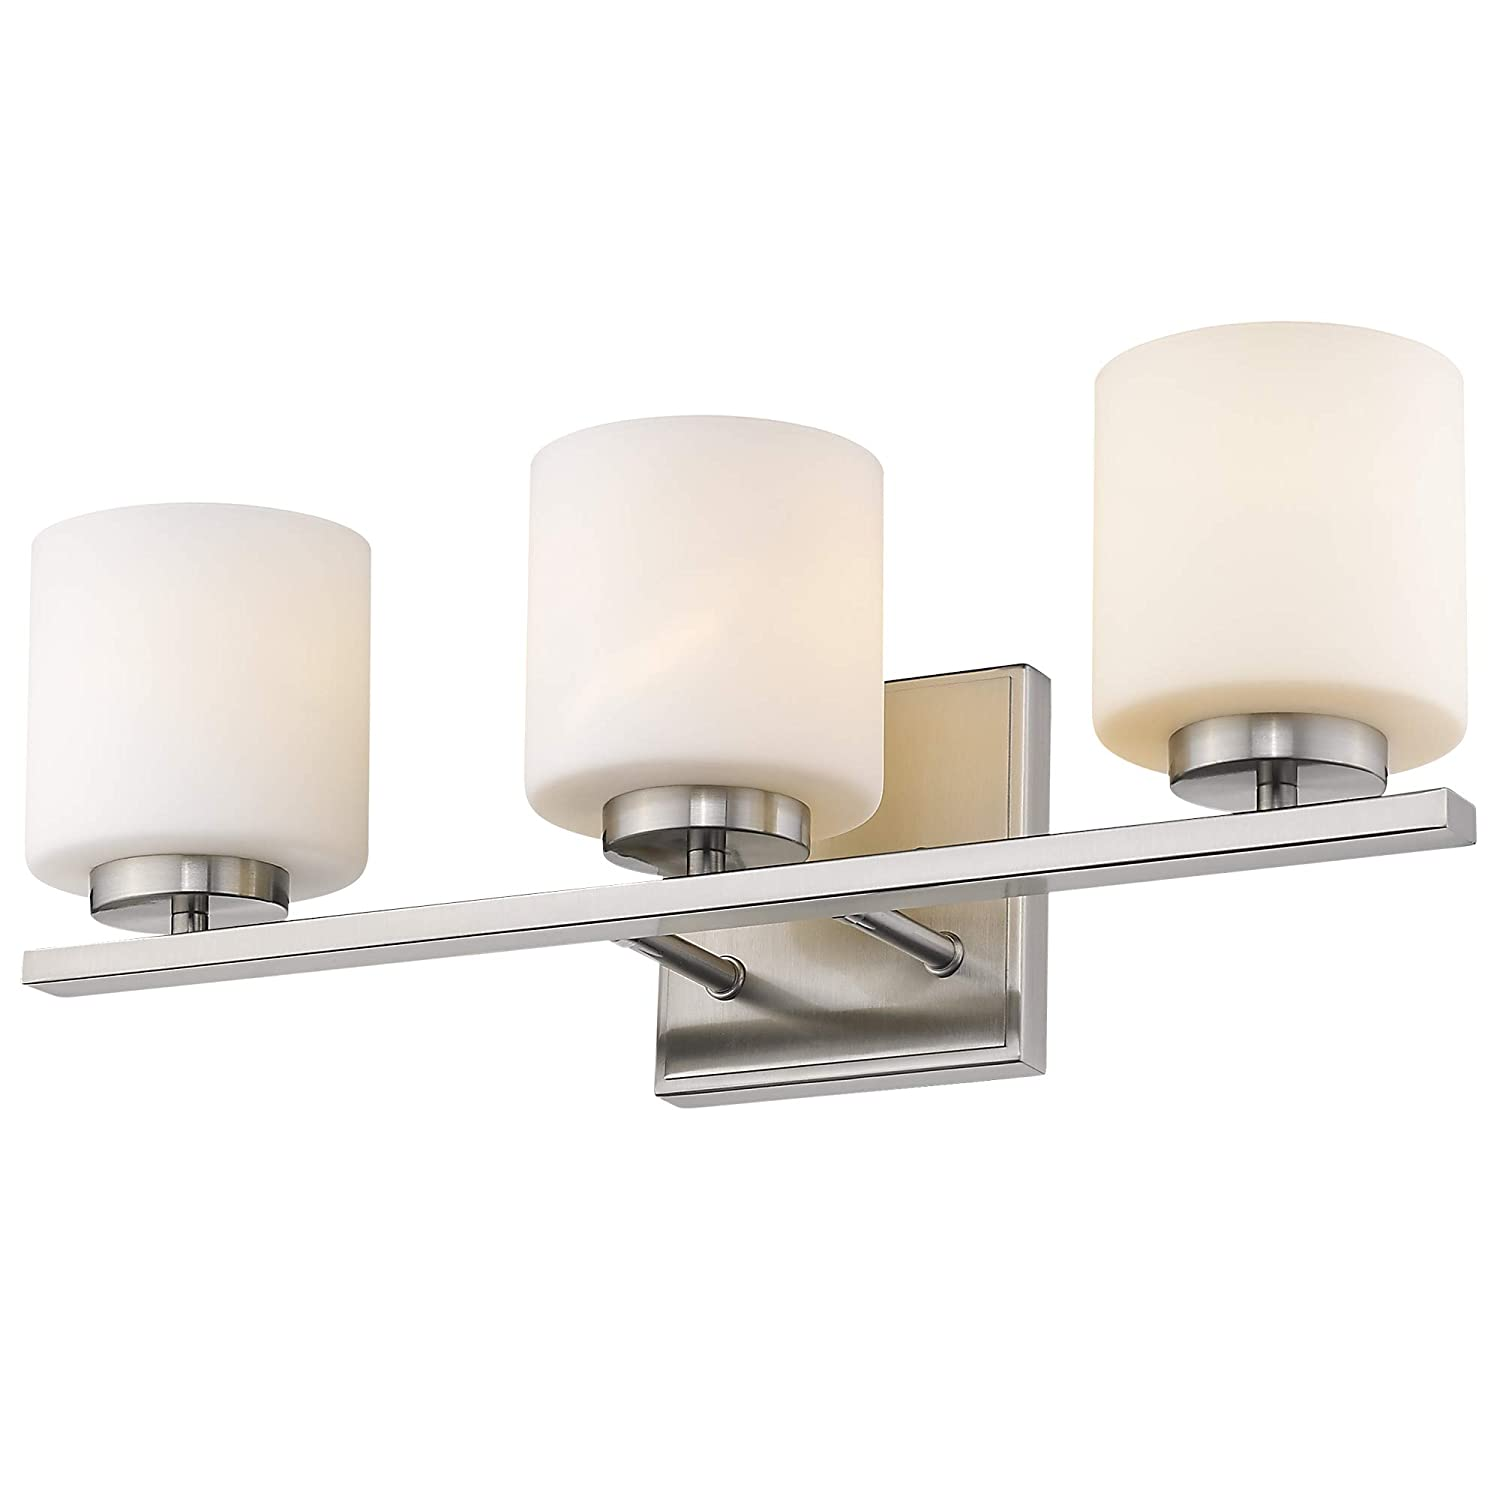 Emliviar 3-Light Bathroom Vanity Light Fixture, Brushed Nickel Finish with White Frosted Glass Shade, 21002-3B